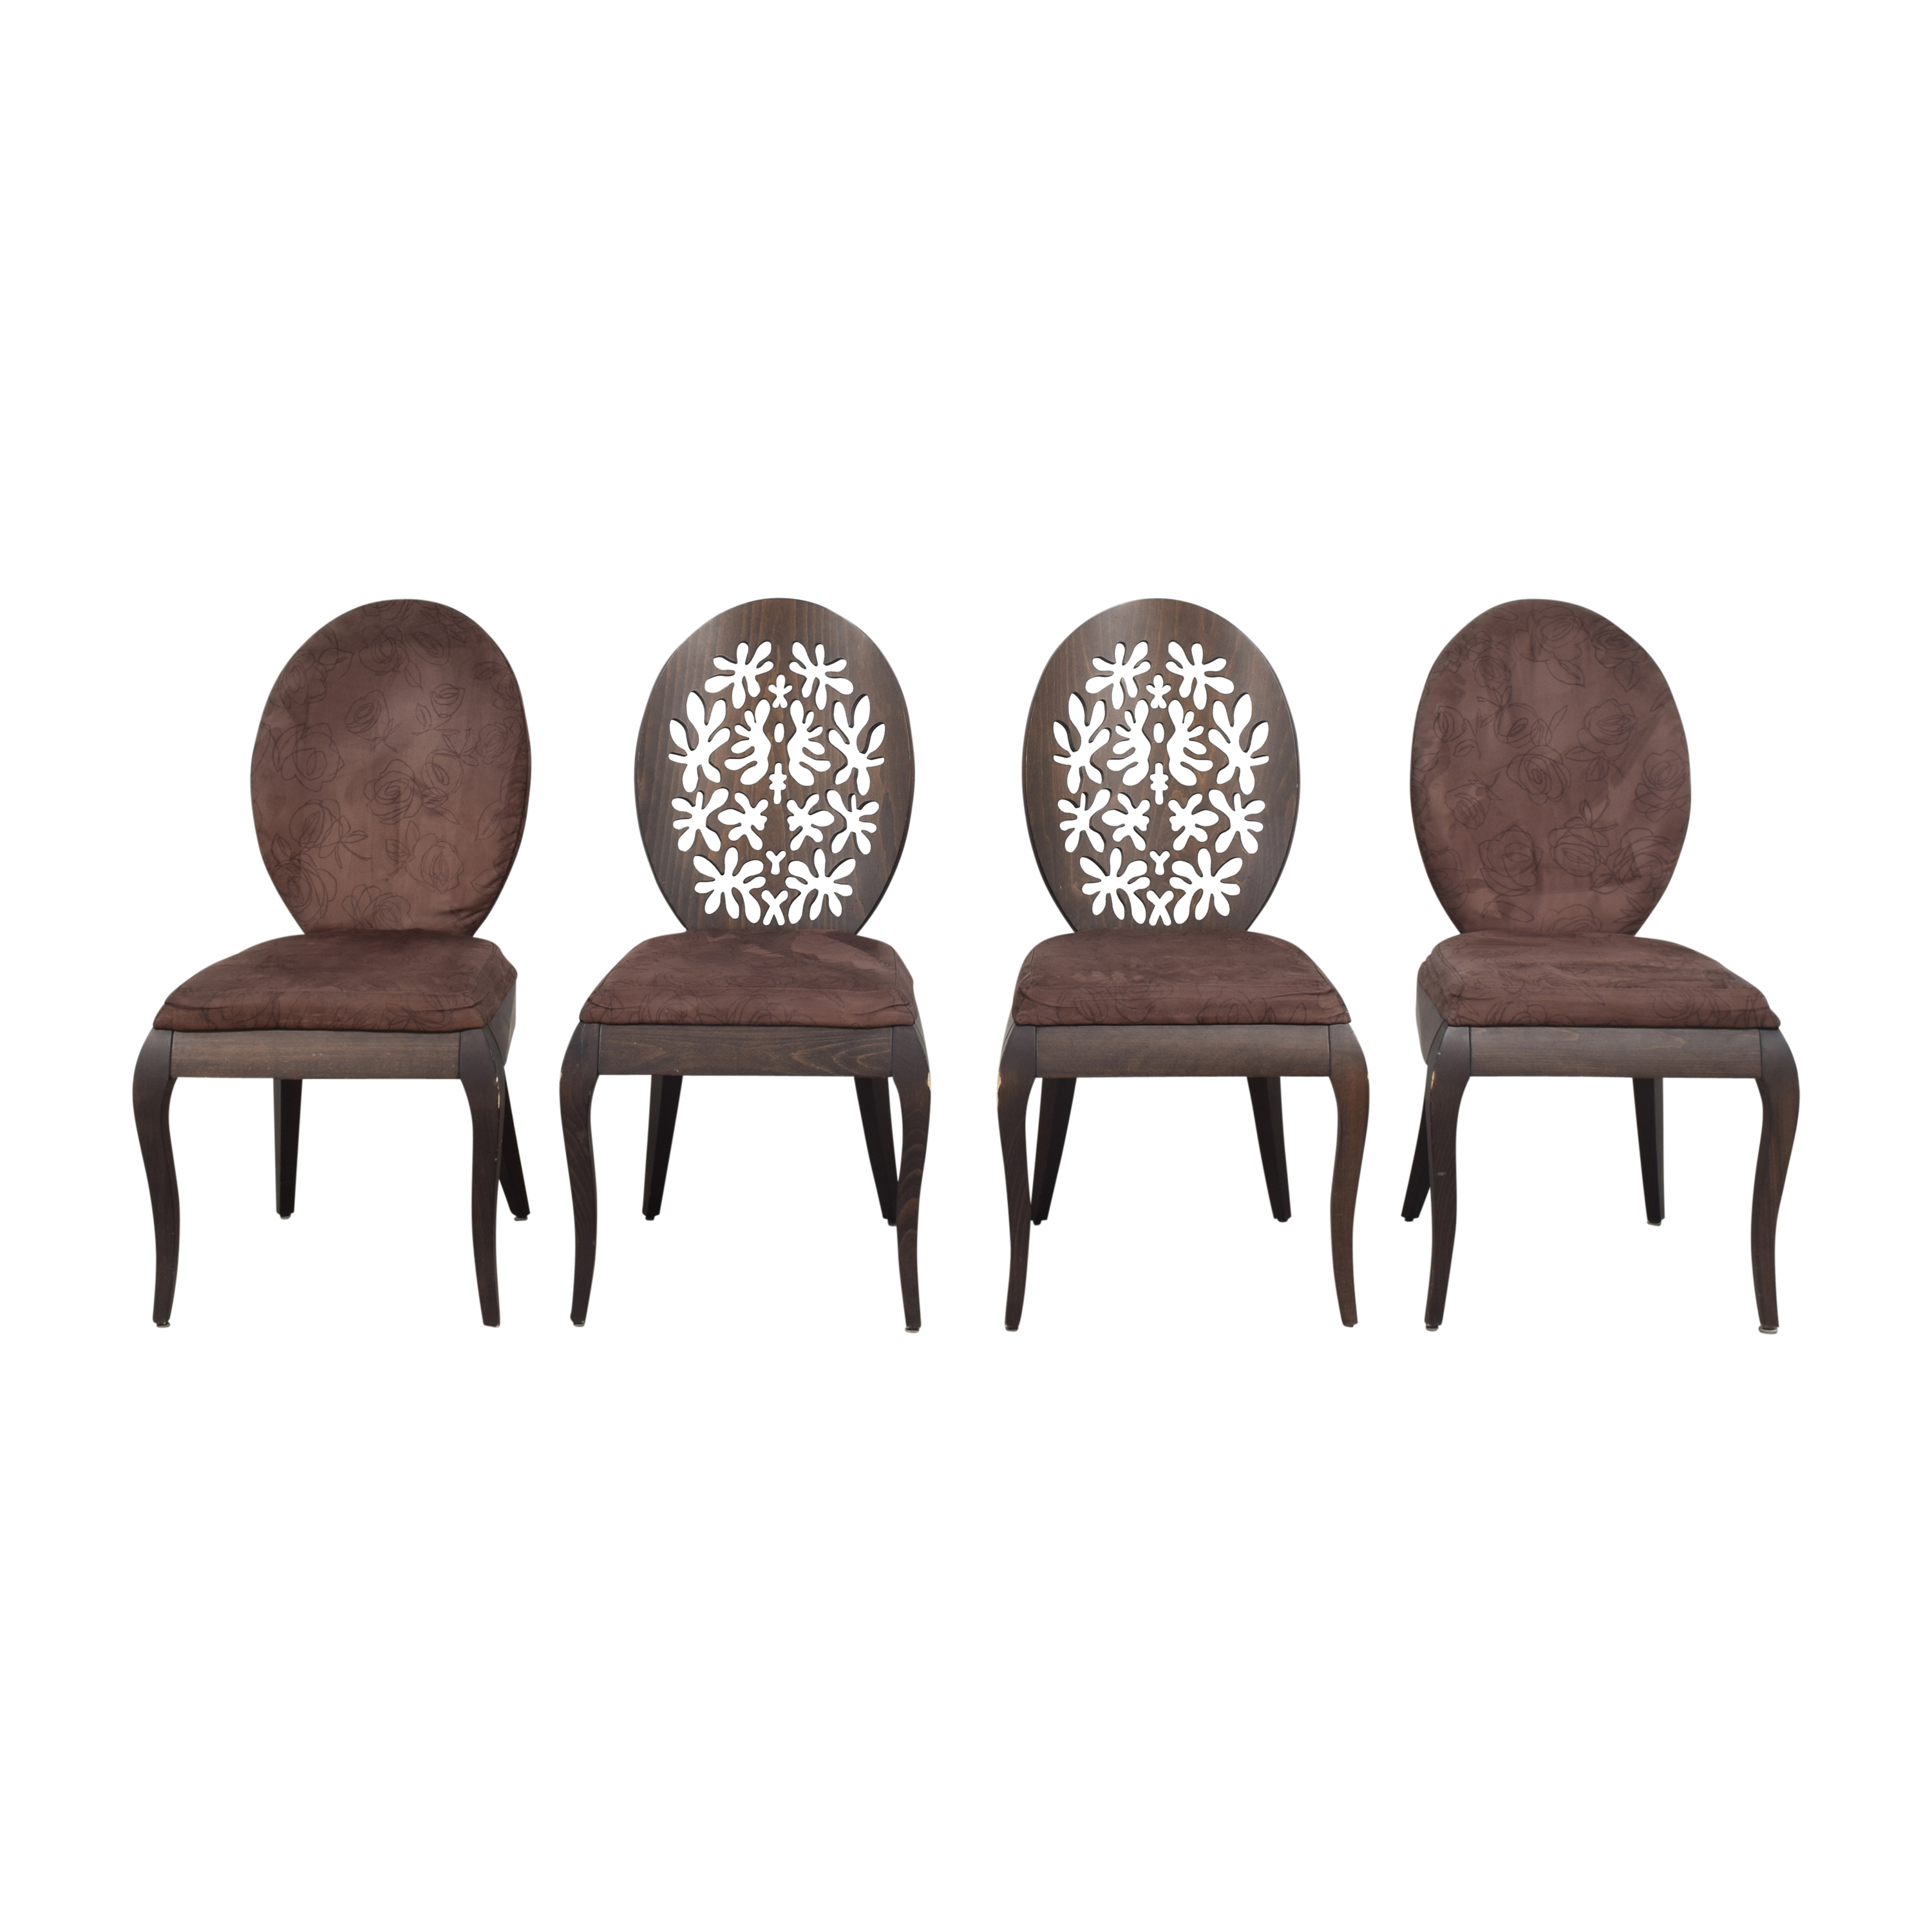 Michelangelo Designs Michelangelo Designs Oval Back Dining Chairs dimensions